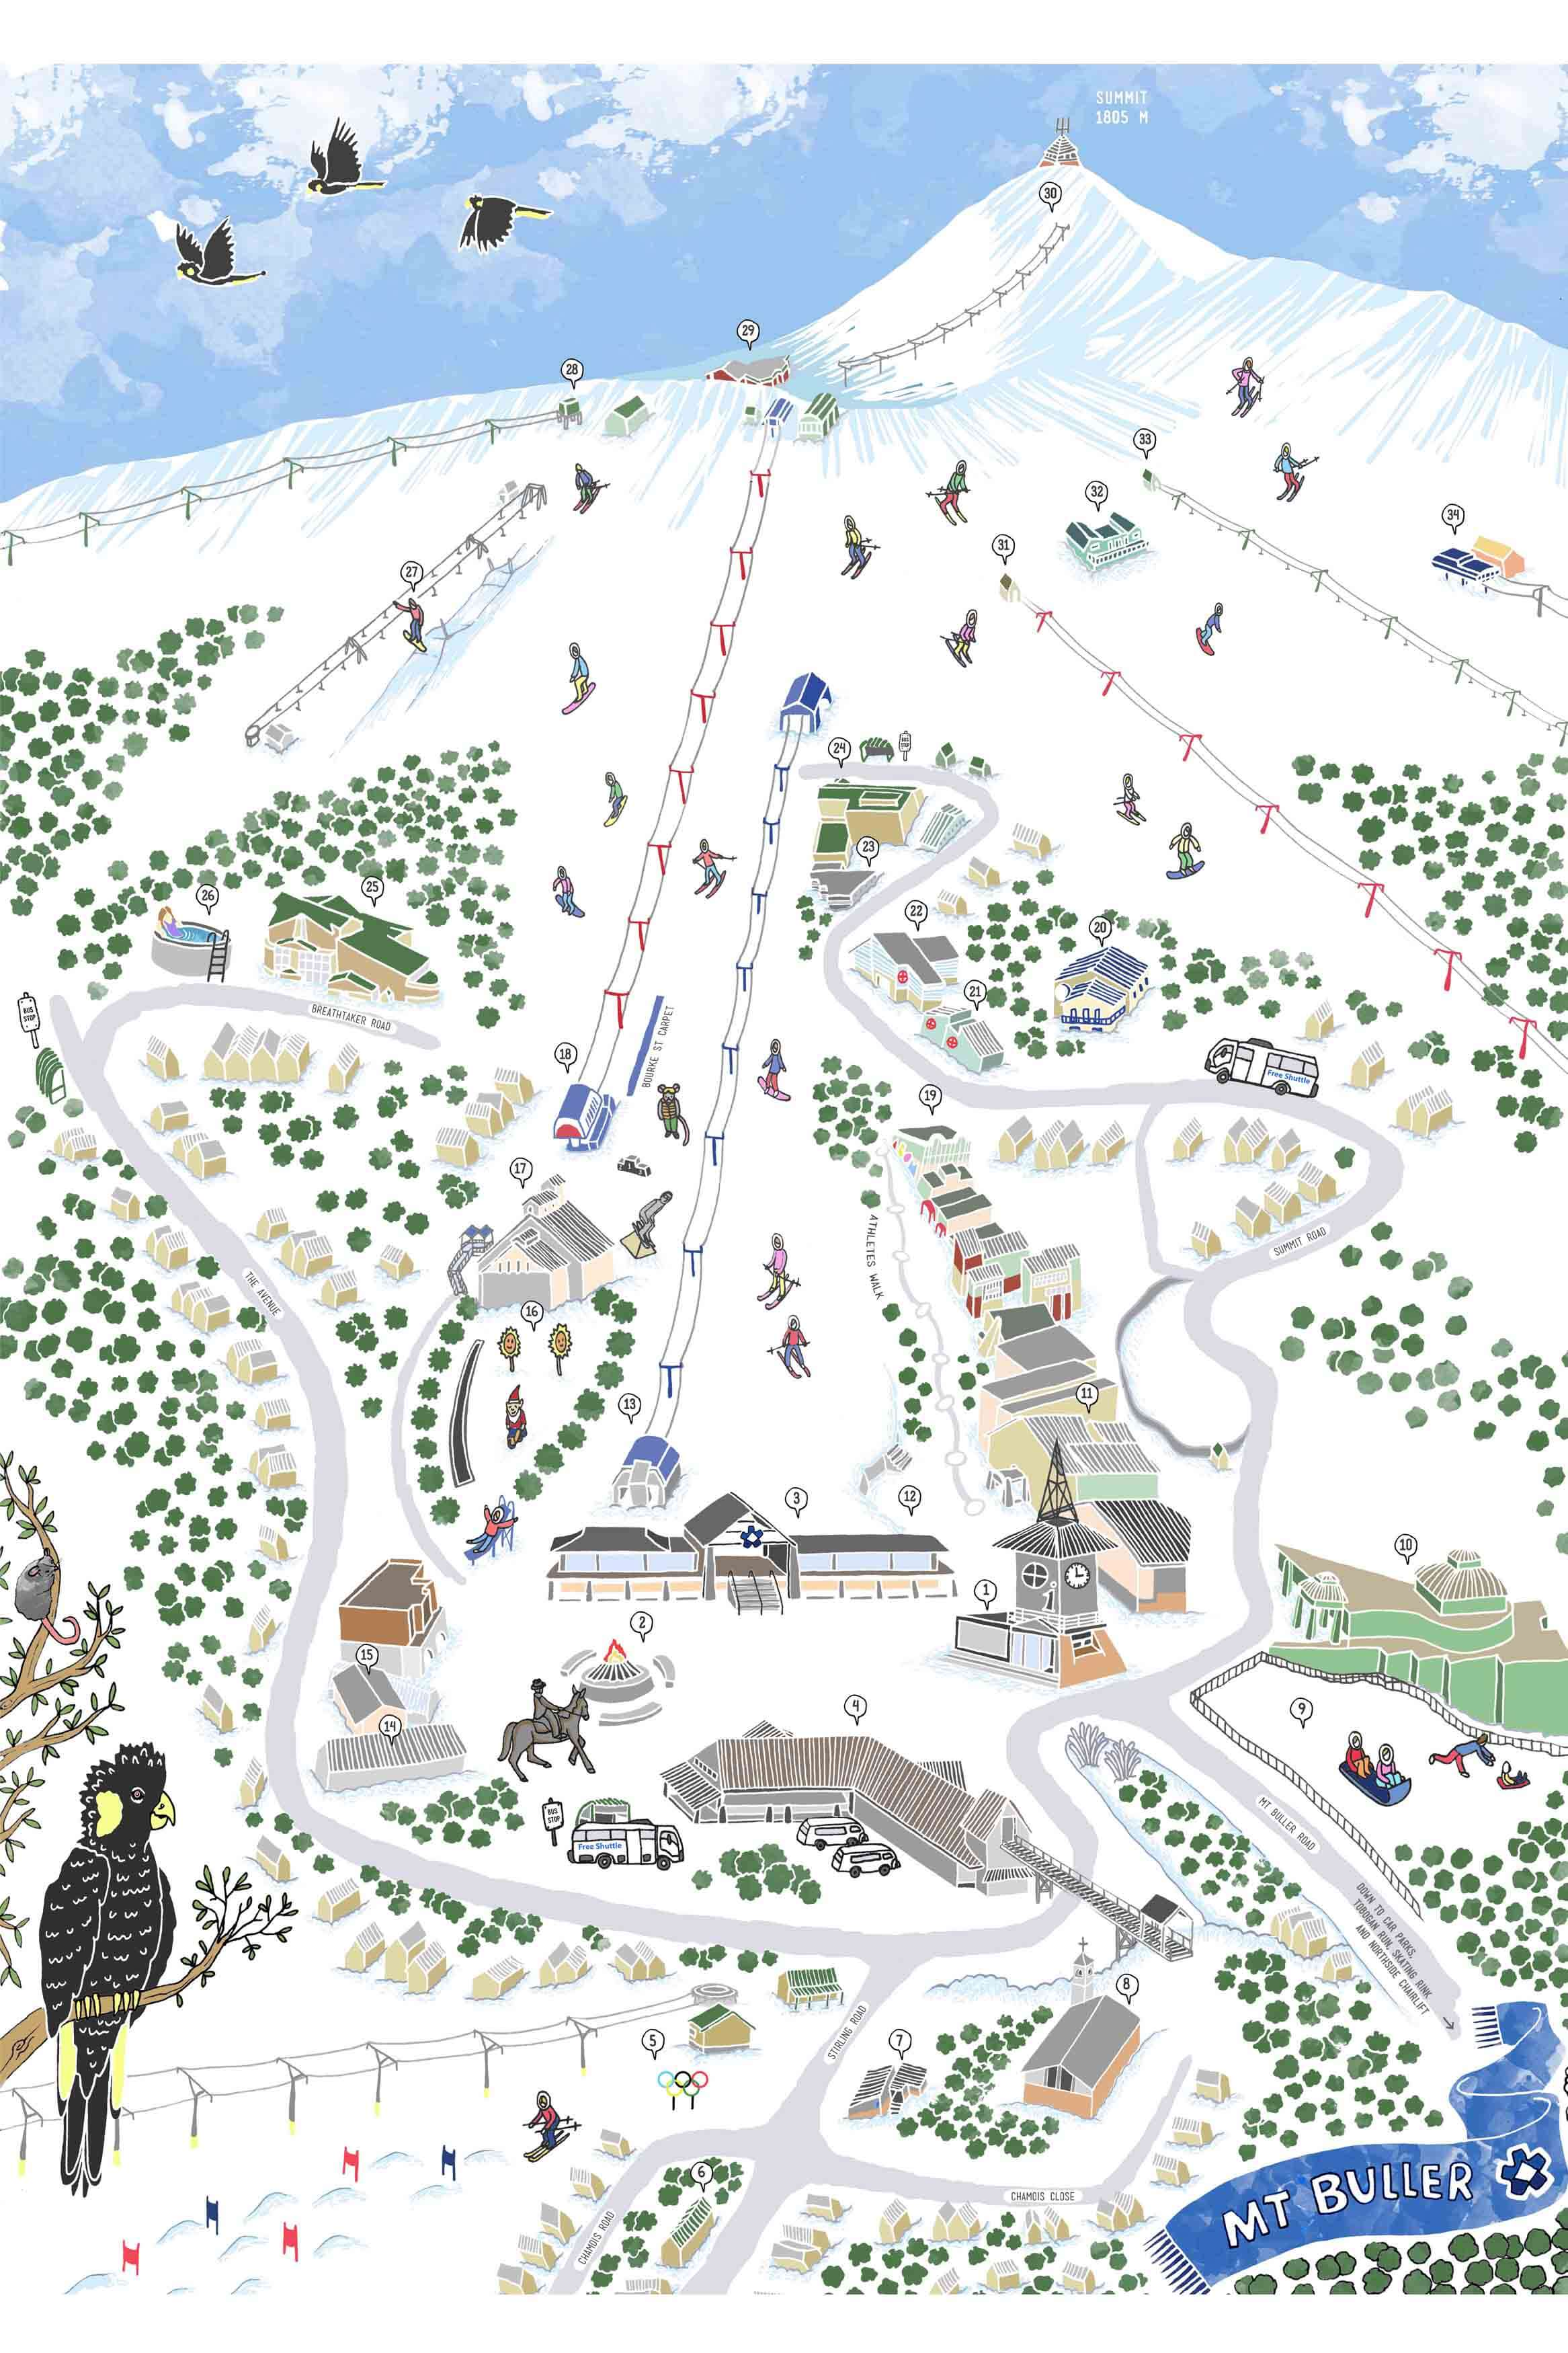 mt. buller illustrated map design